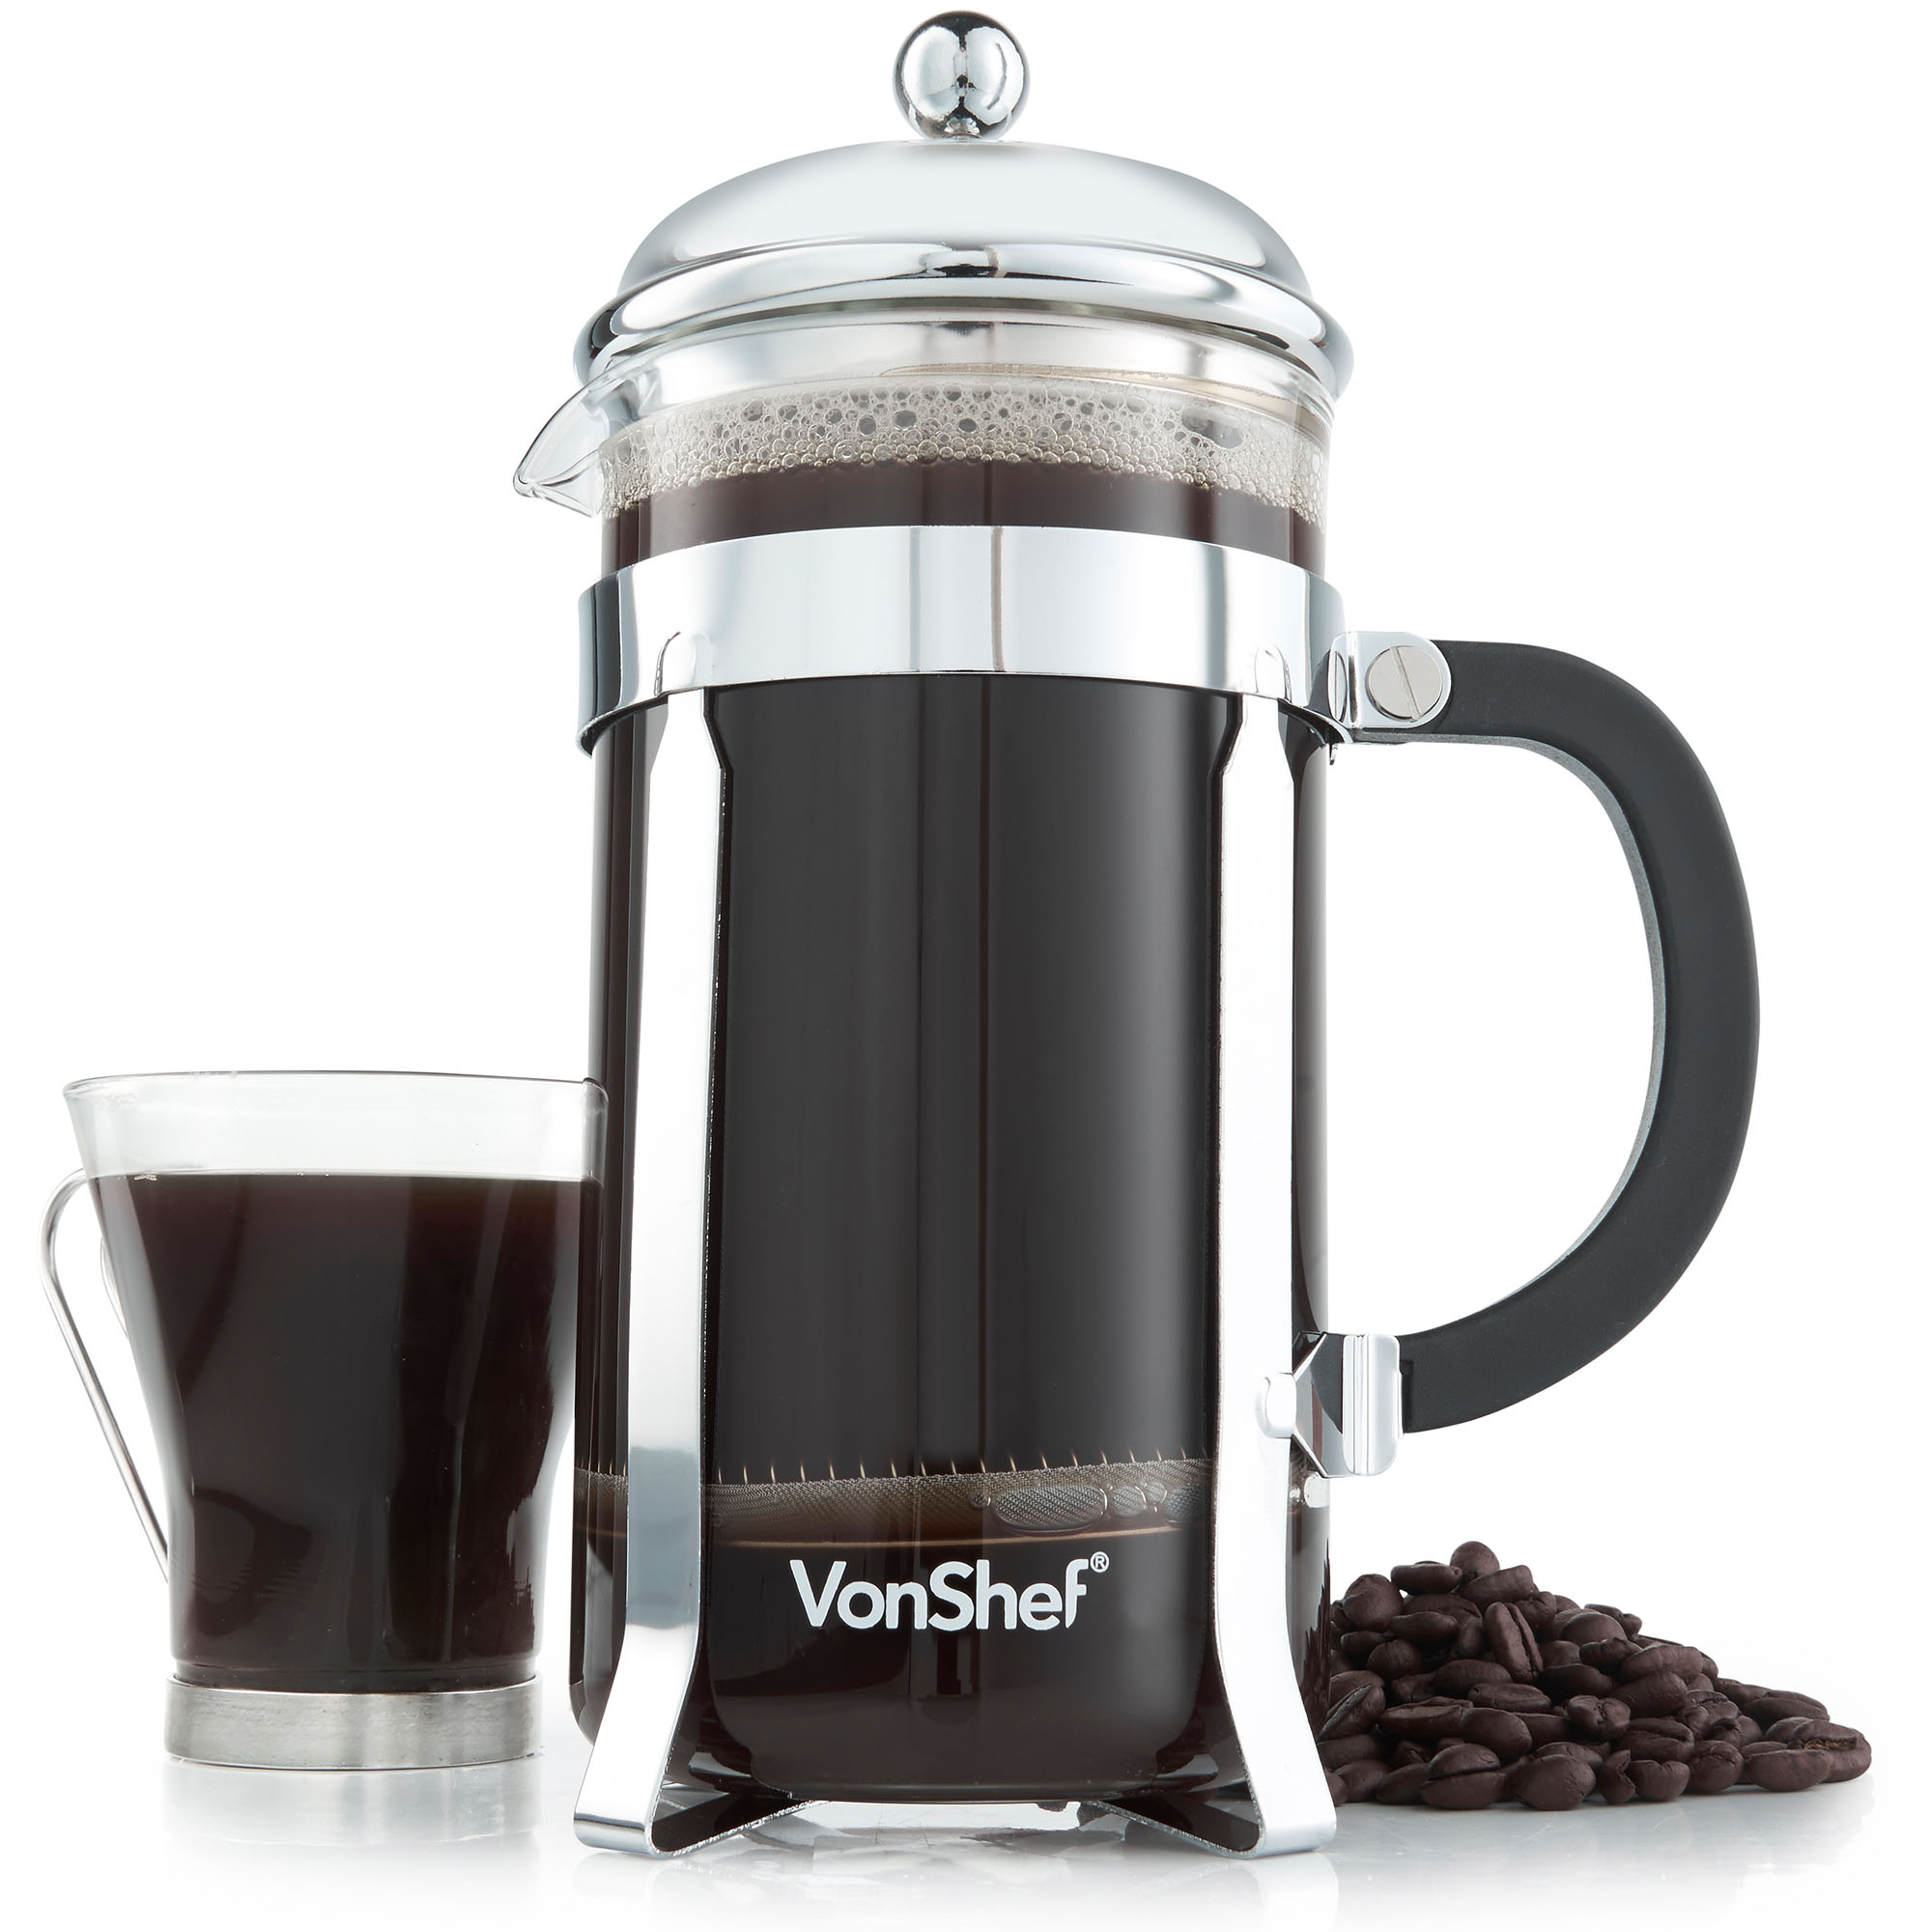 vonshef 12 cup 1 5 l french press stainless steel cafetiere filter coffee maker ebay. Black Bedroom Furniture Sets. Home Design Ideas